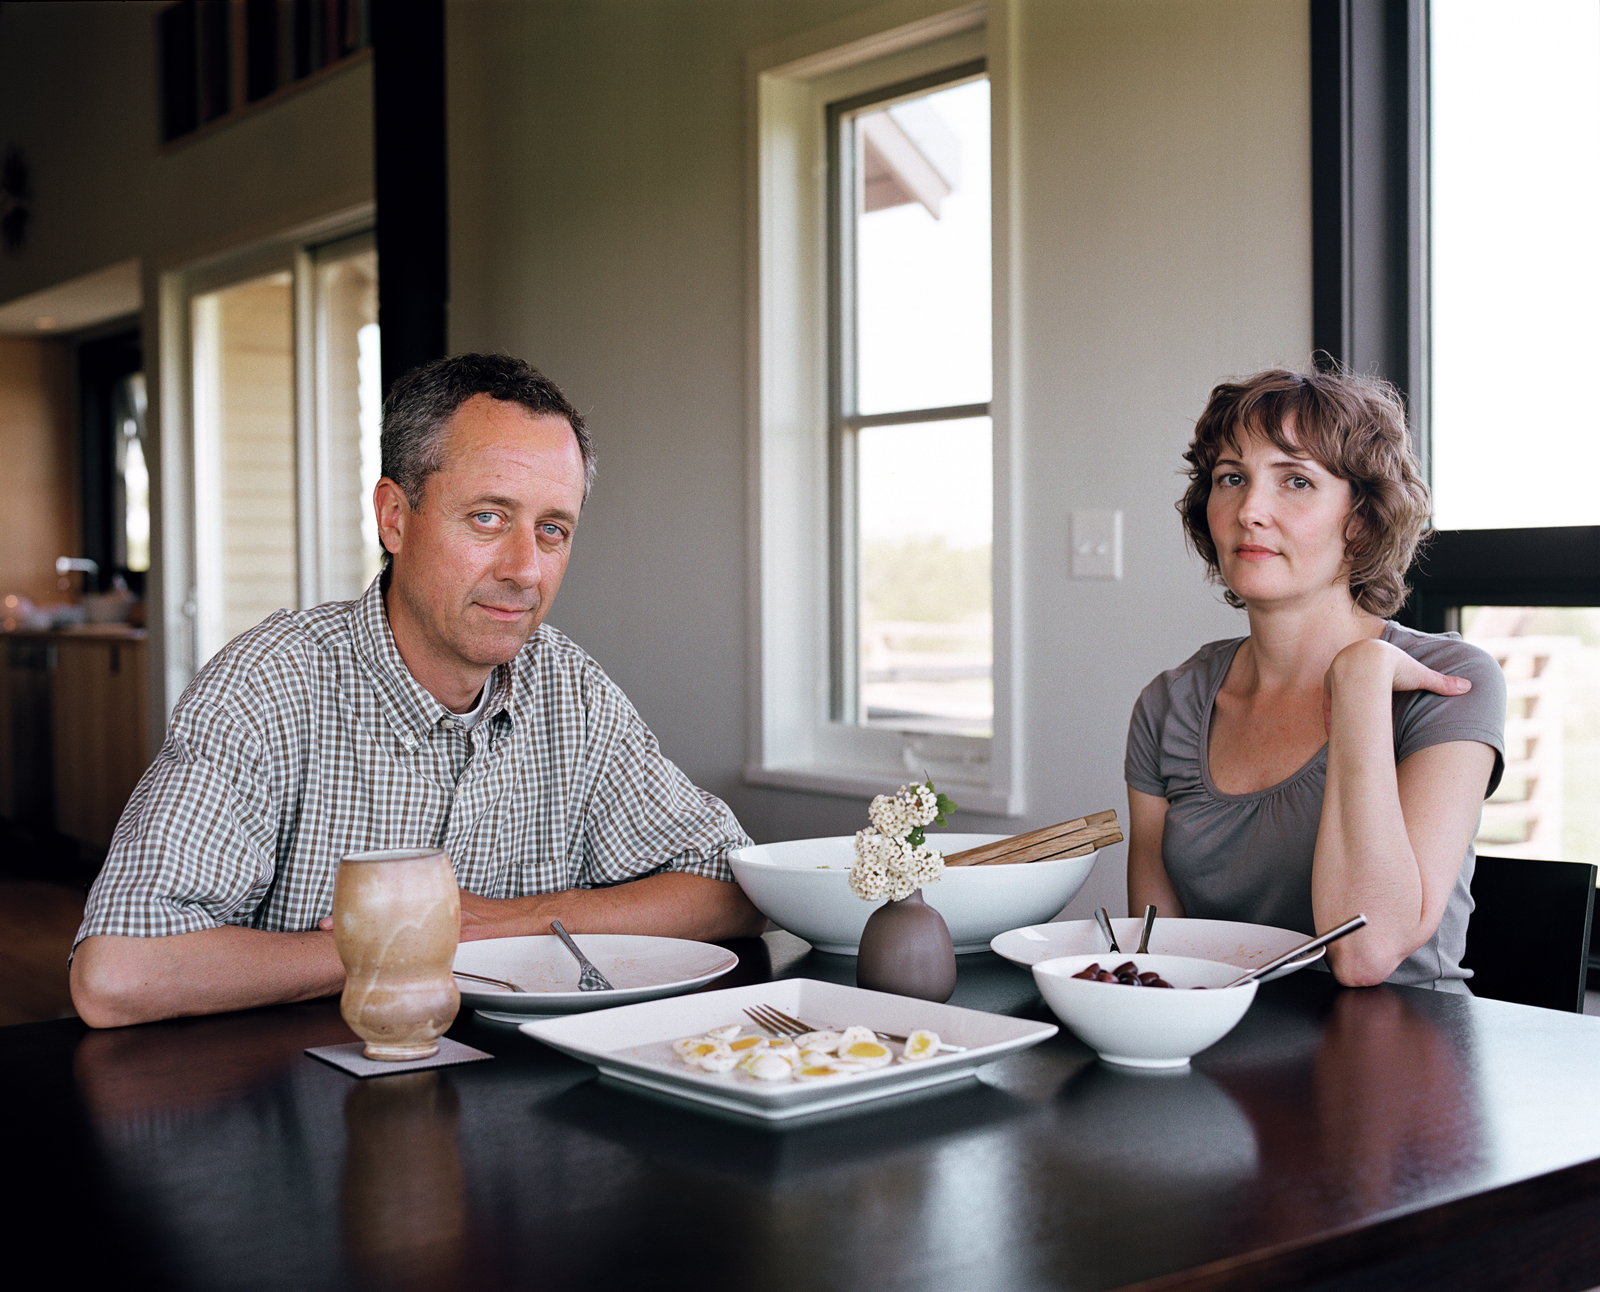 At their dining table, the Moumings enjoy the fruits of Joanna's passion for cooking and Geoff's passion for growing.